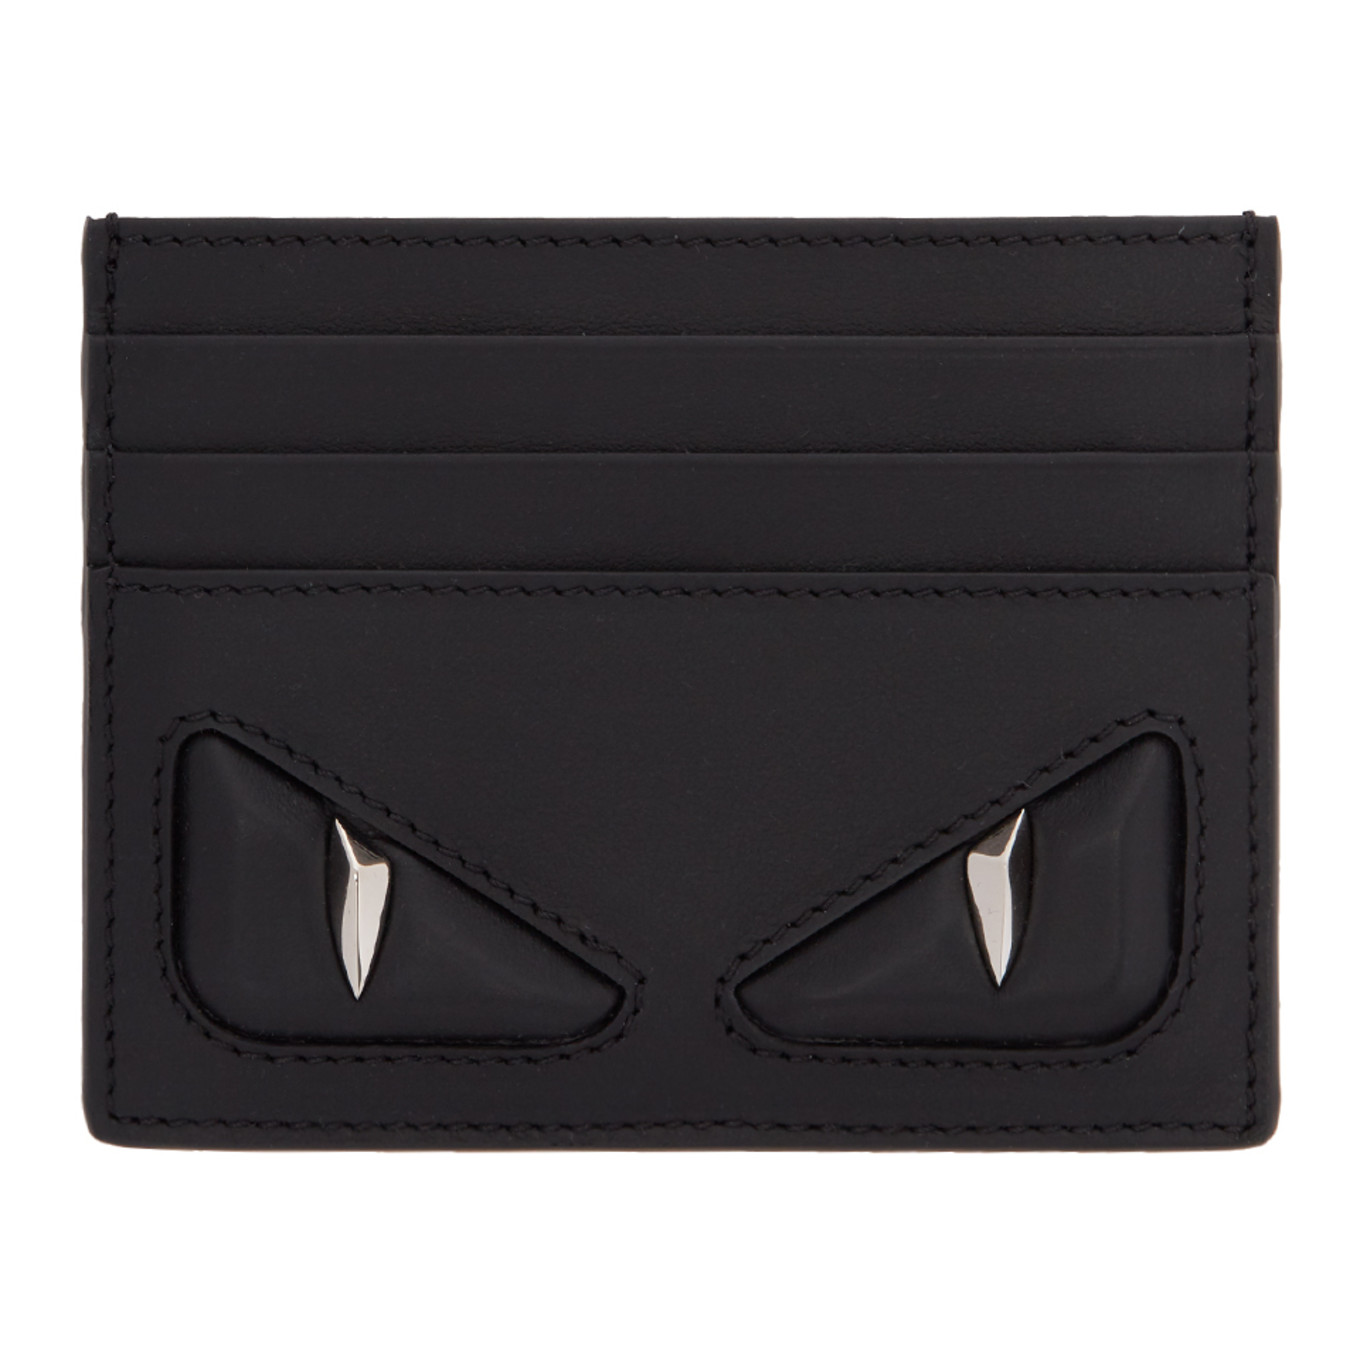 Black 3 D 'bag Bugs' Card Holder by Fendi